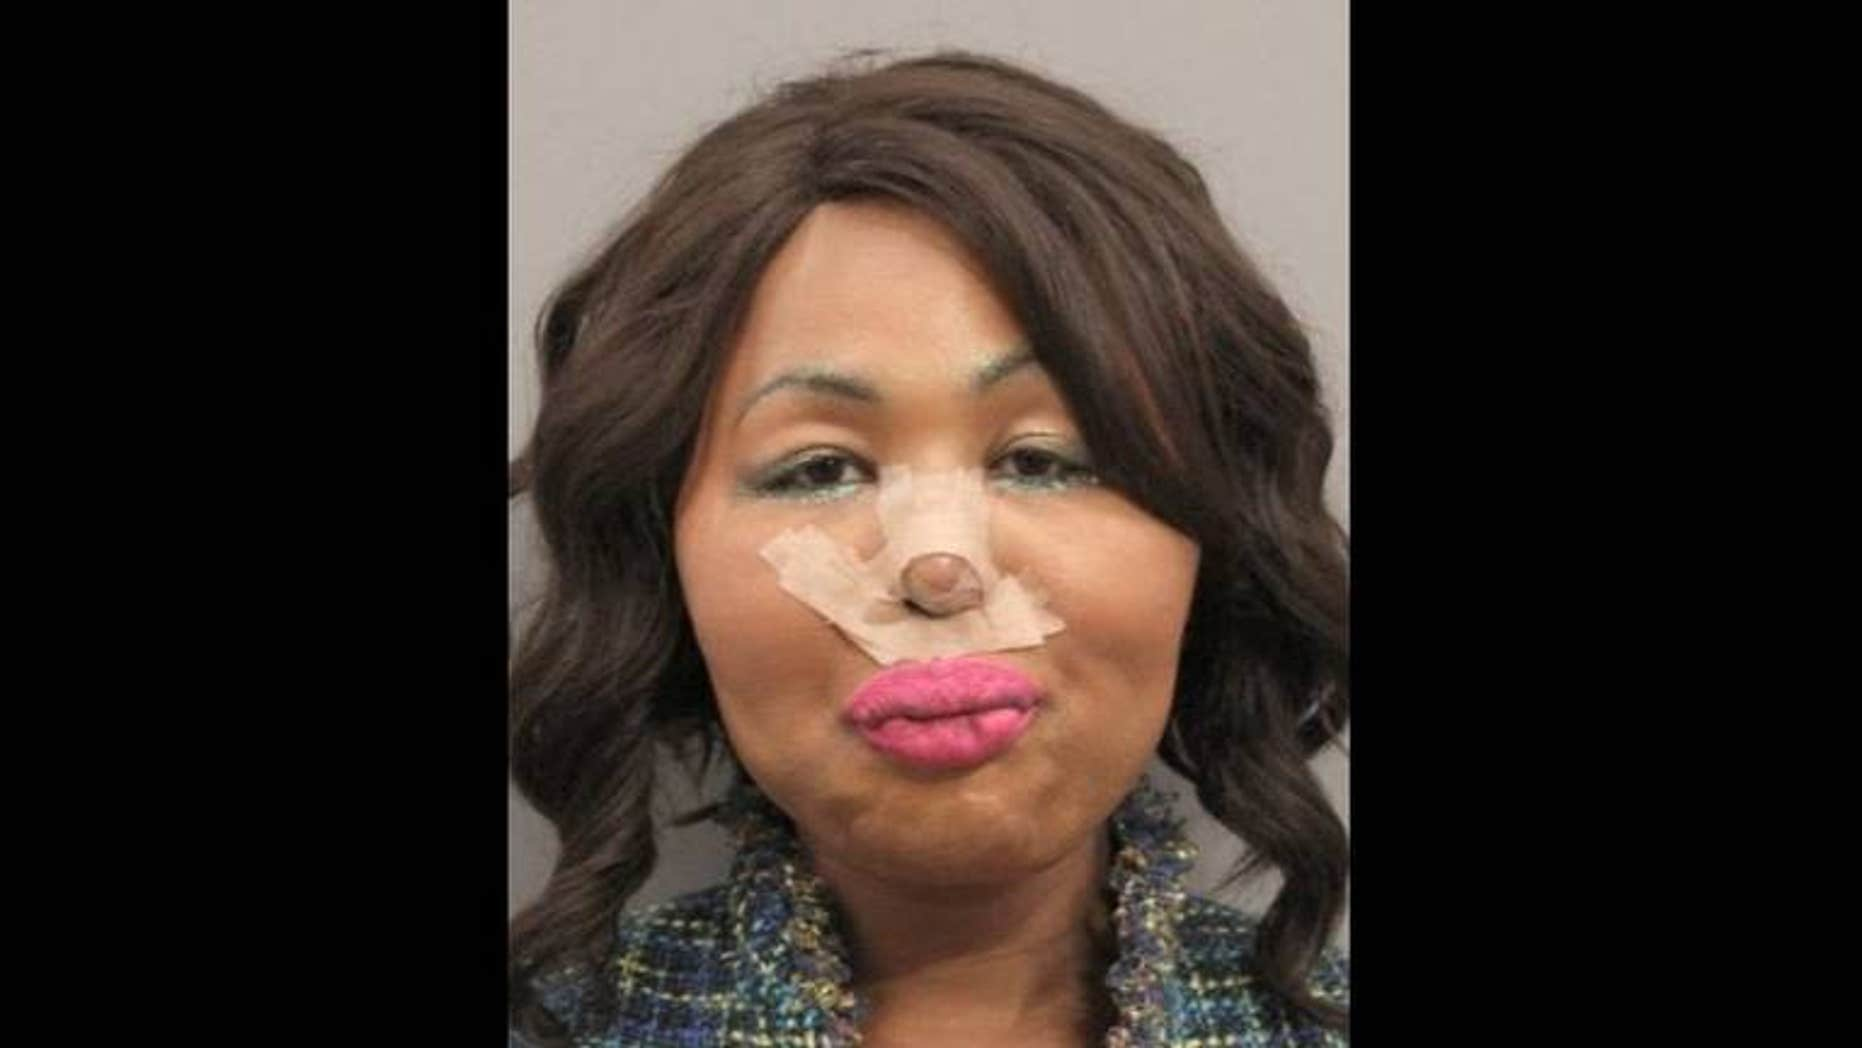 """Jimmy Maurice Lewis II, known as """"Iconic Facce,"""" allegedly robbed a bank to pay for her plastic surgery. (Gulfport Police Department)"""